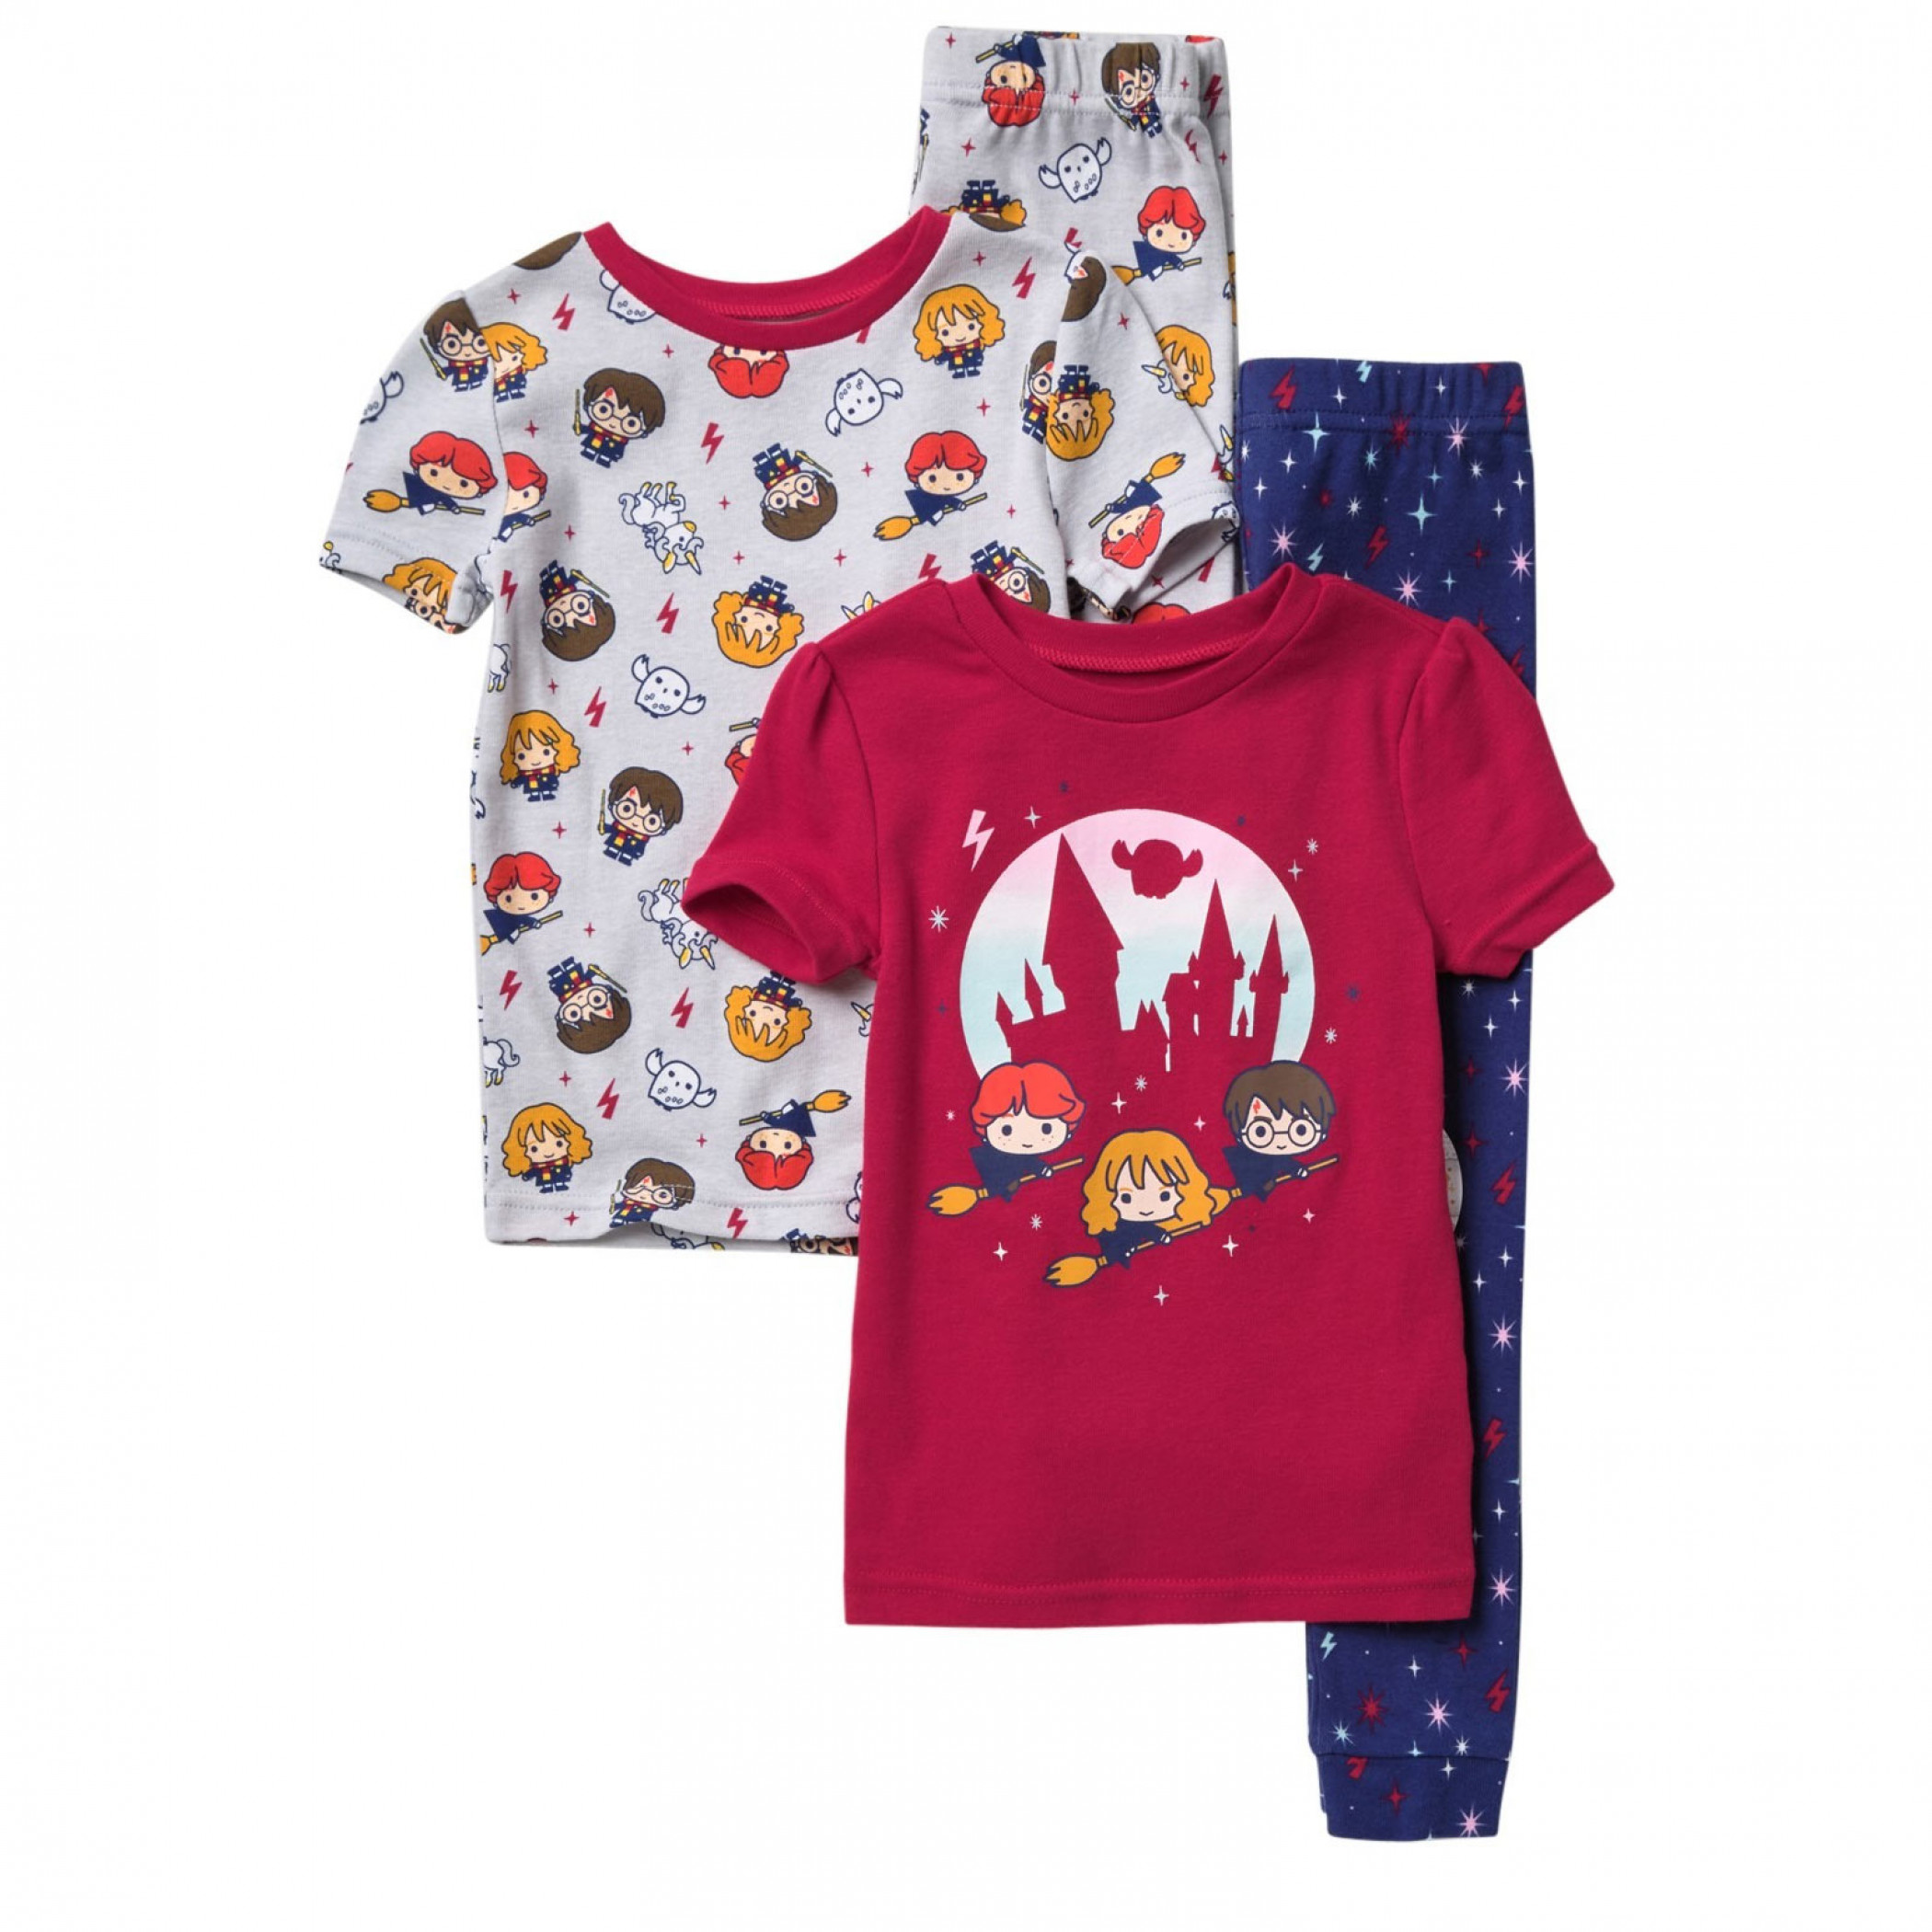 Harry Potter Wizards and All Over Print 4-Piece Pajama Set